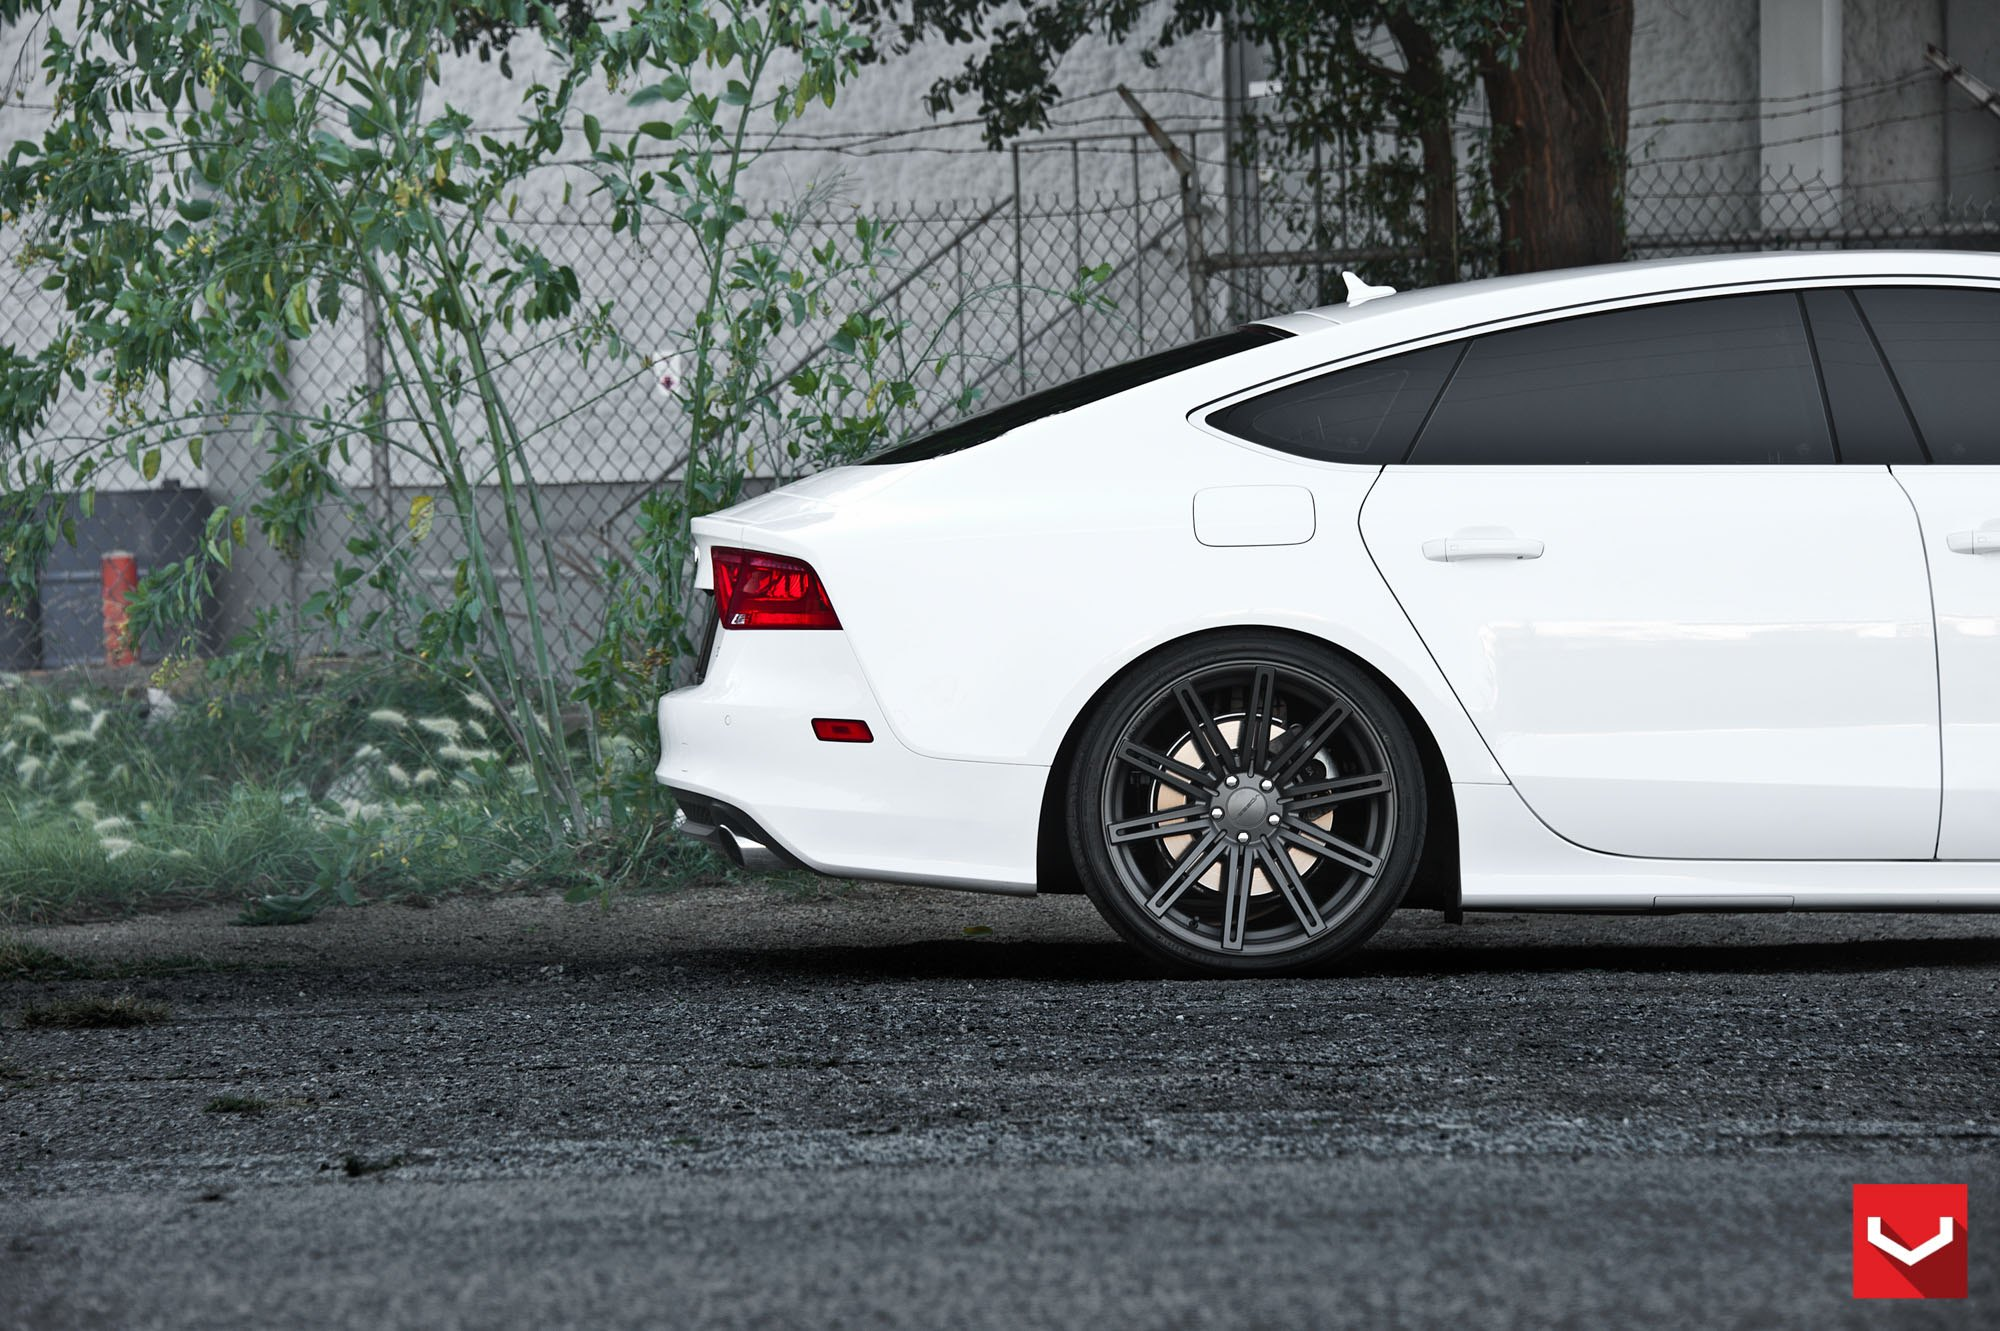 audi a7 white with black rims. aftermarket red taillights on white audi a7 photo by vossen with black rims d